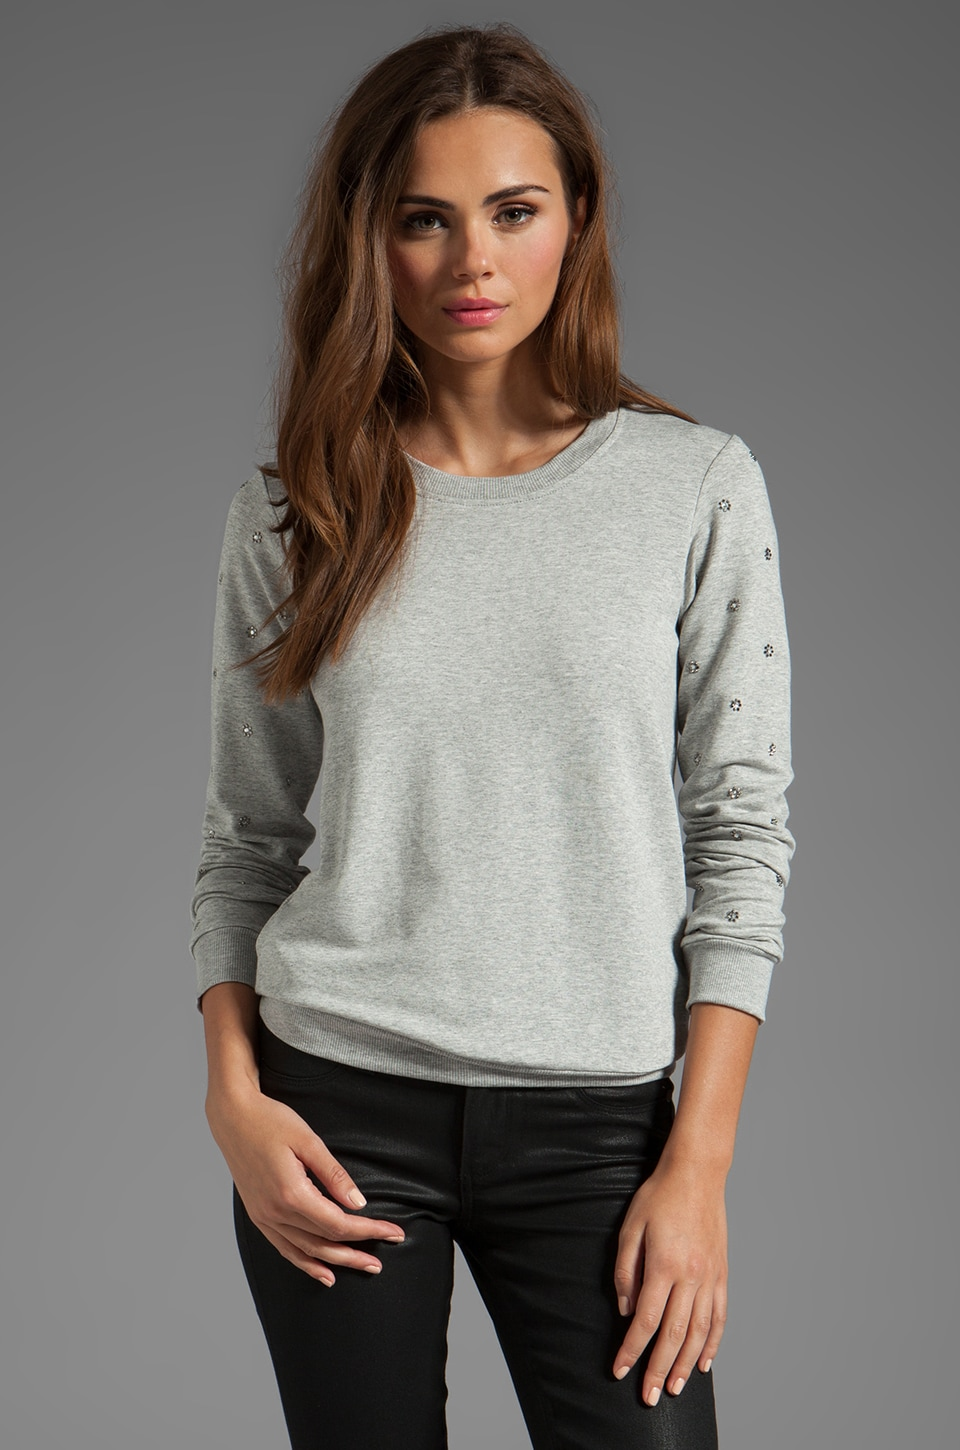 Bailey 44 Bright Star Sweatshirt in Light Heather Grey